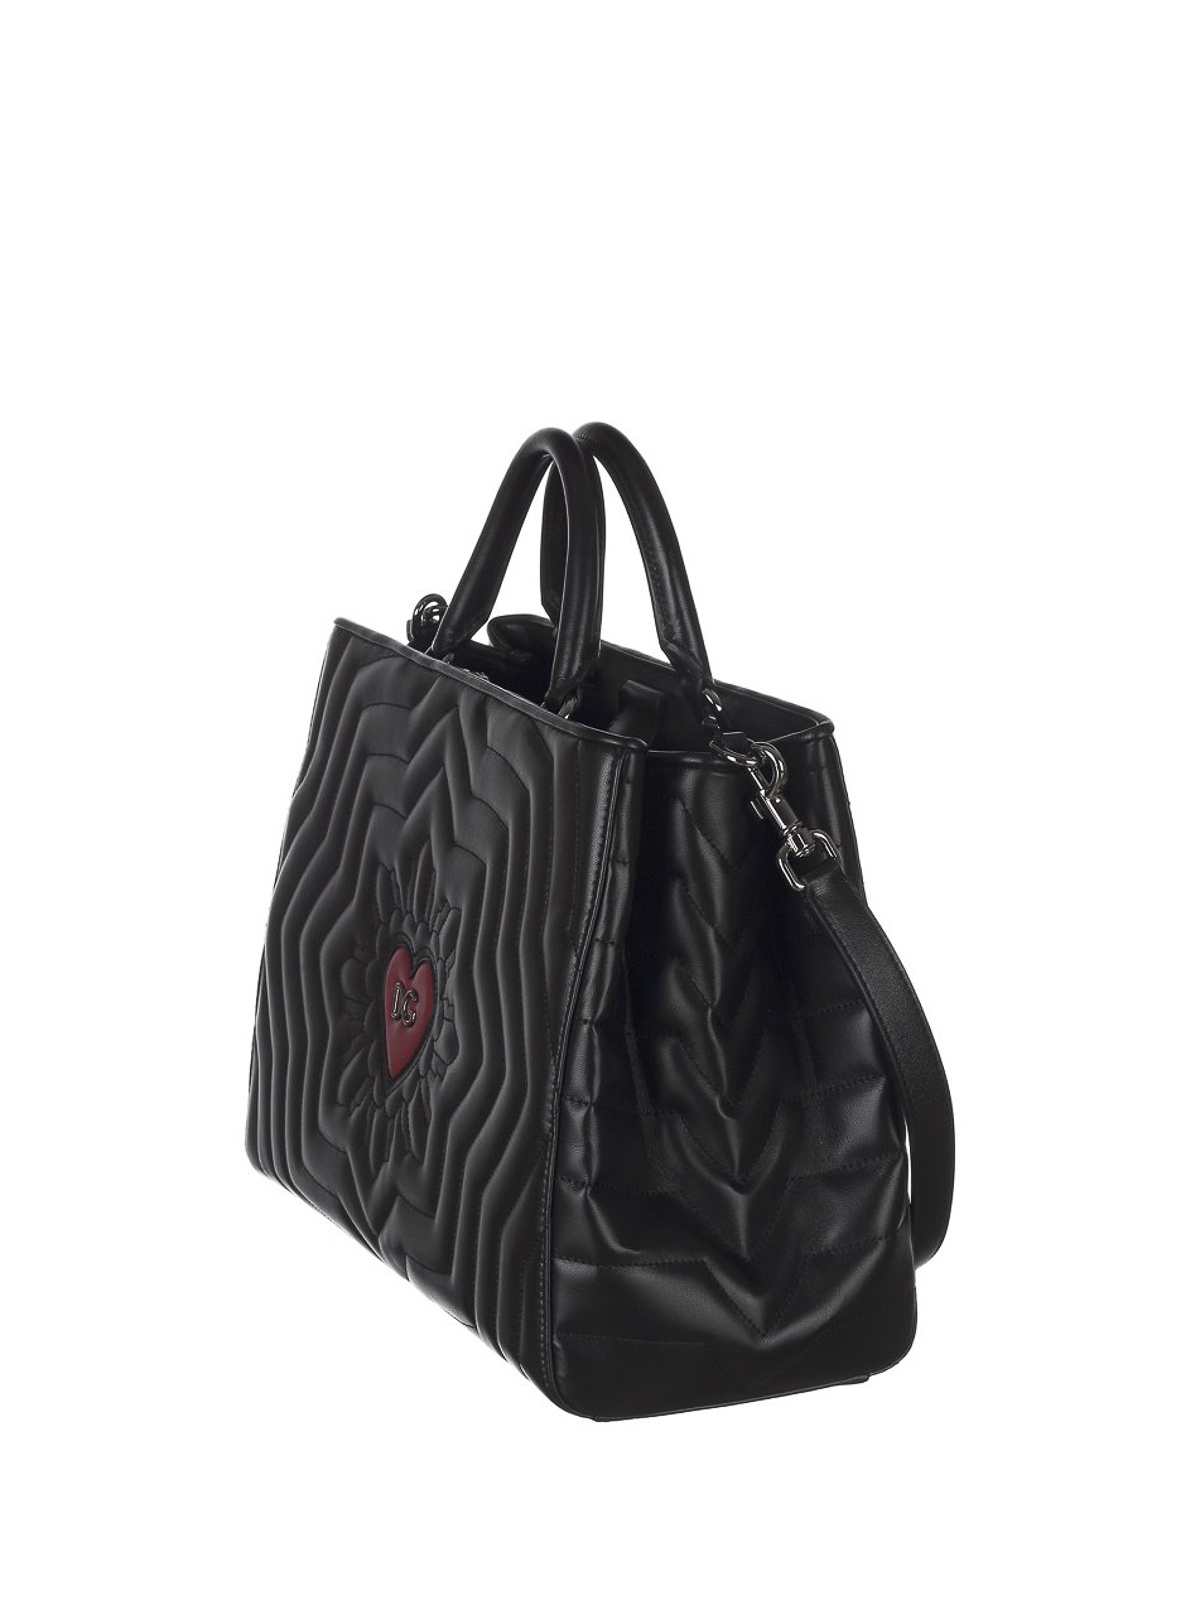 Dolce & Gabbana Glam quilted leather tote Klo3gl